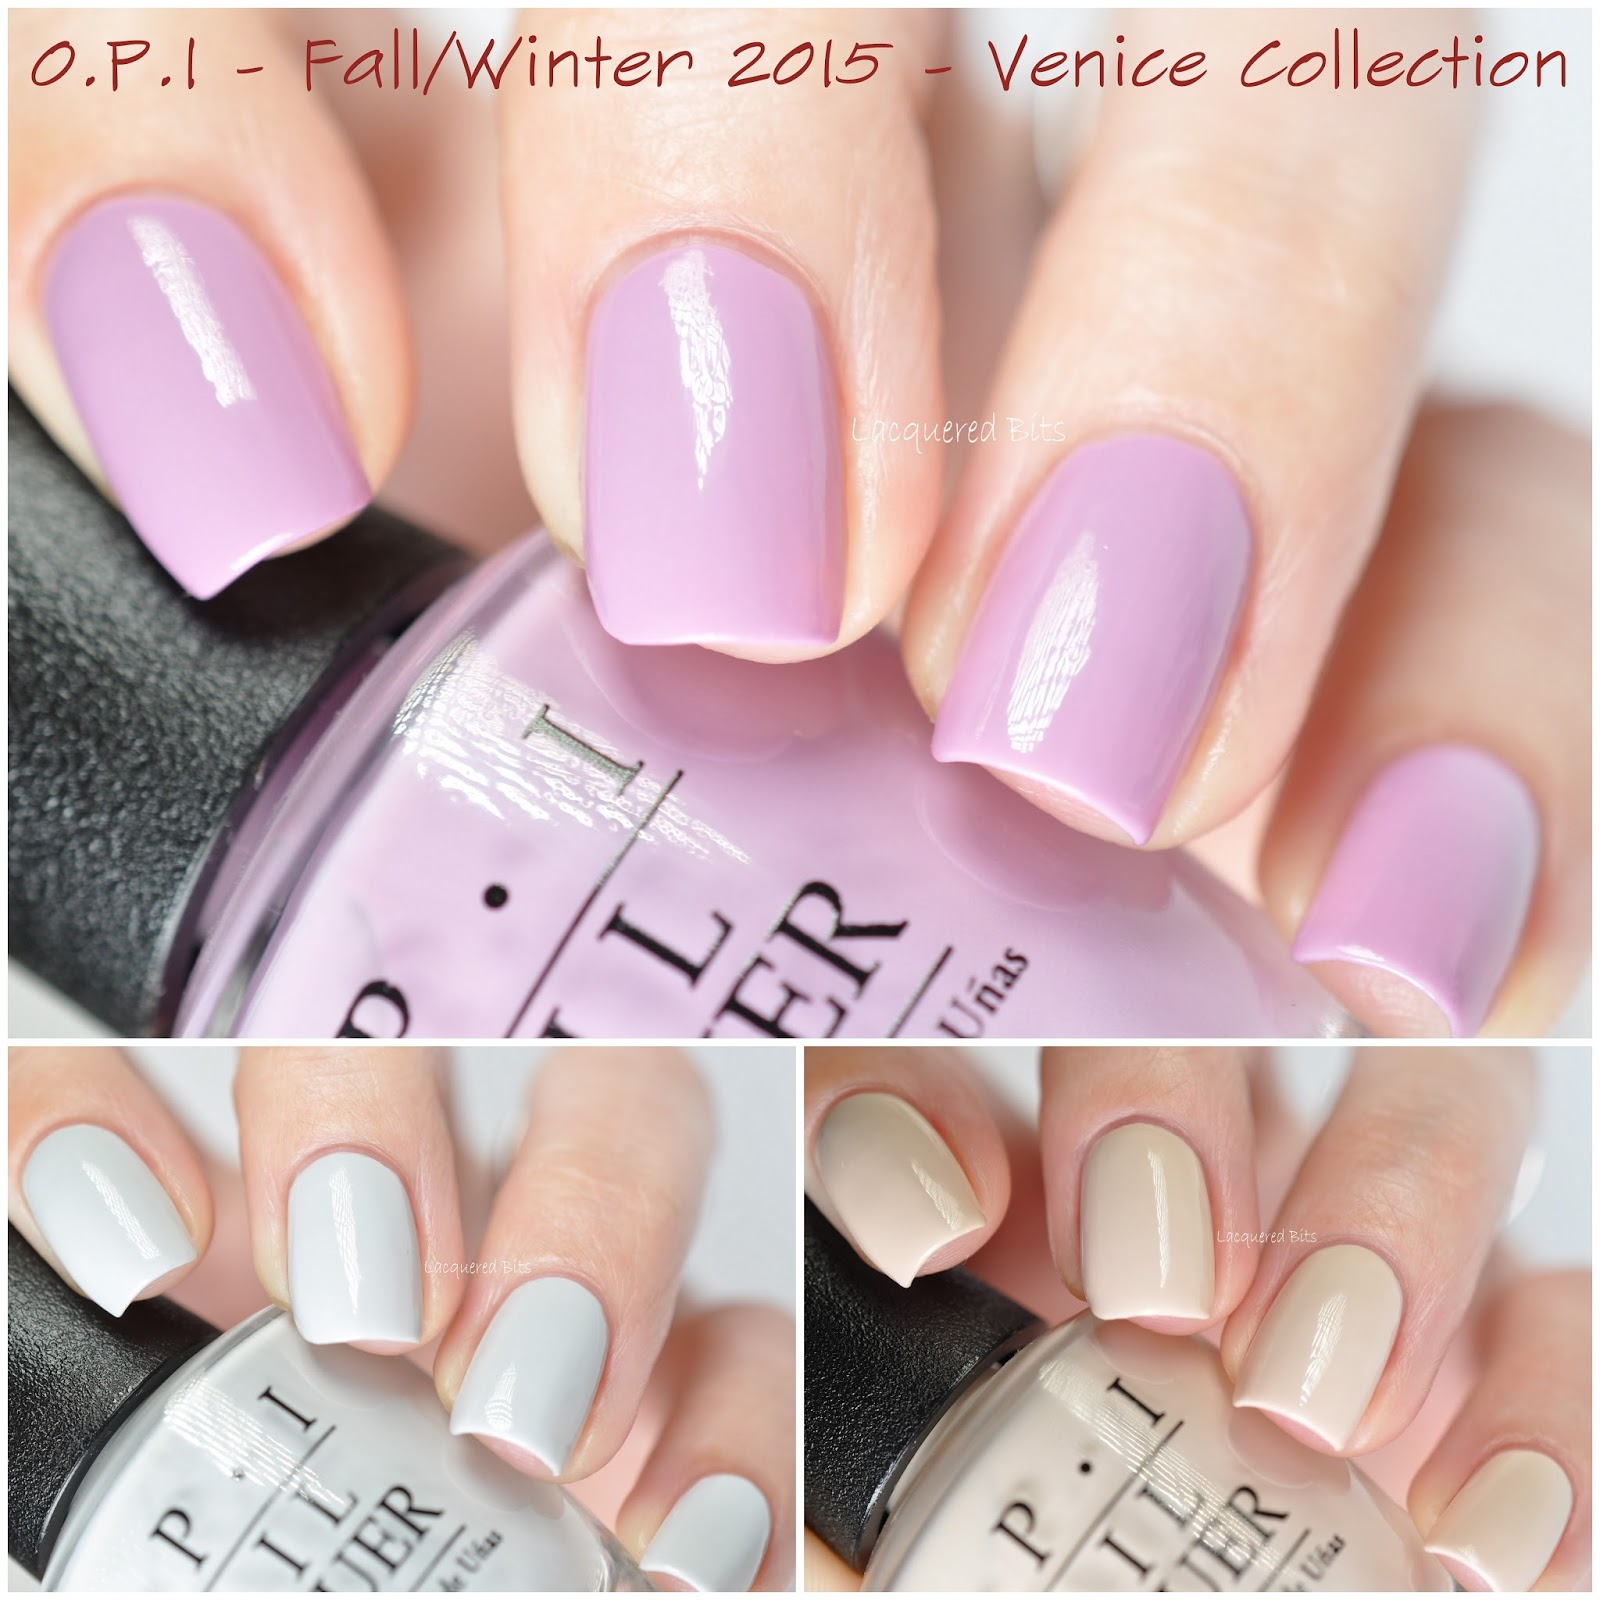 O.P.I Fall/Winter 2015 - Venice Collection - Swatches & Review - My ...